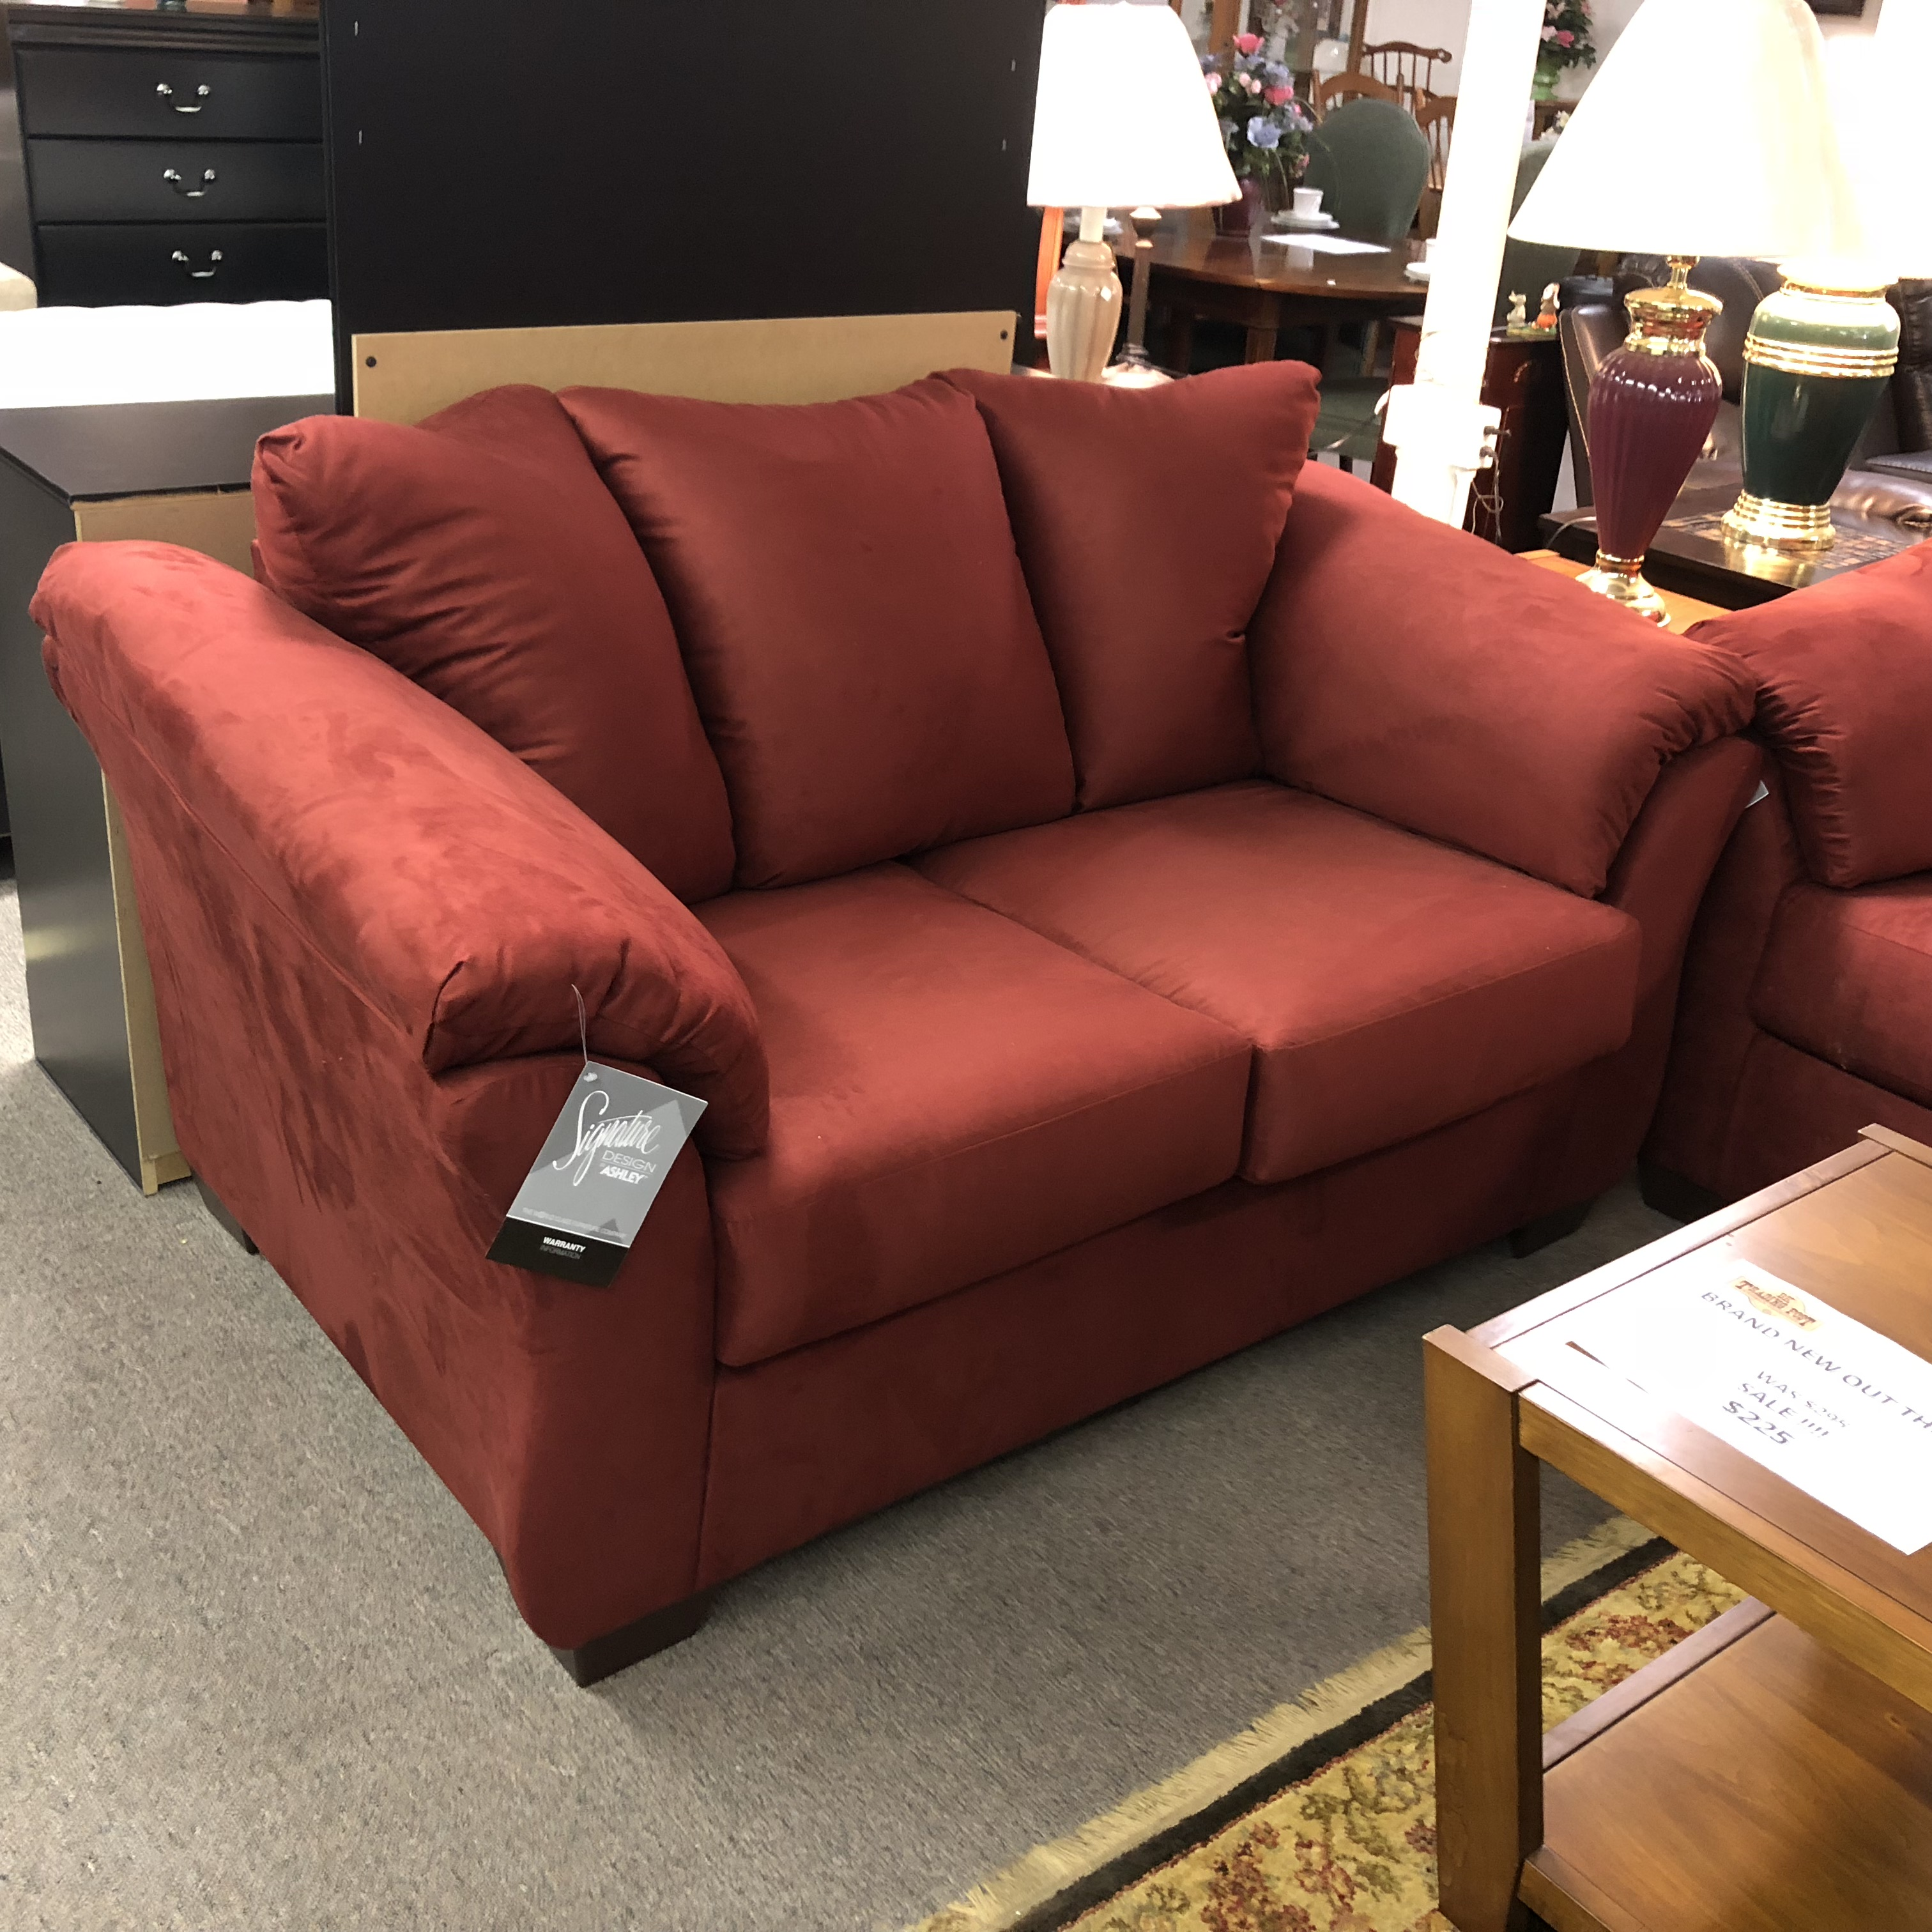 Peachy Living Room Brand New Ashley Furniture Darcy Sofa And Interior Design Ideas Apansoteloinfo